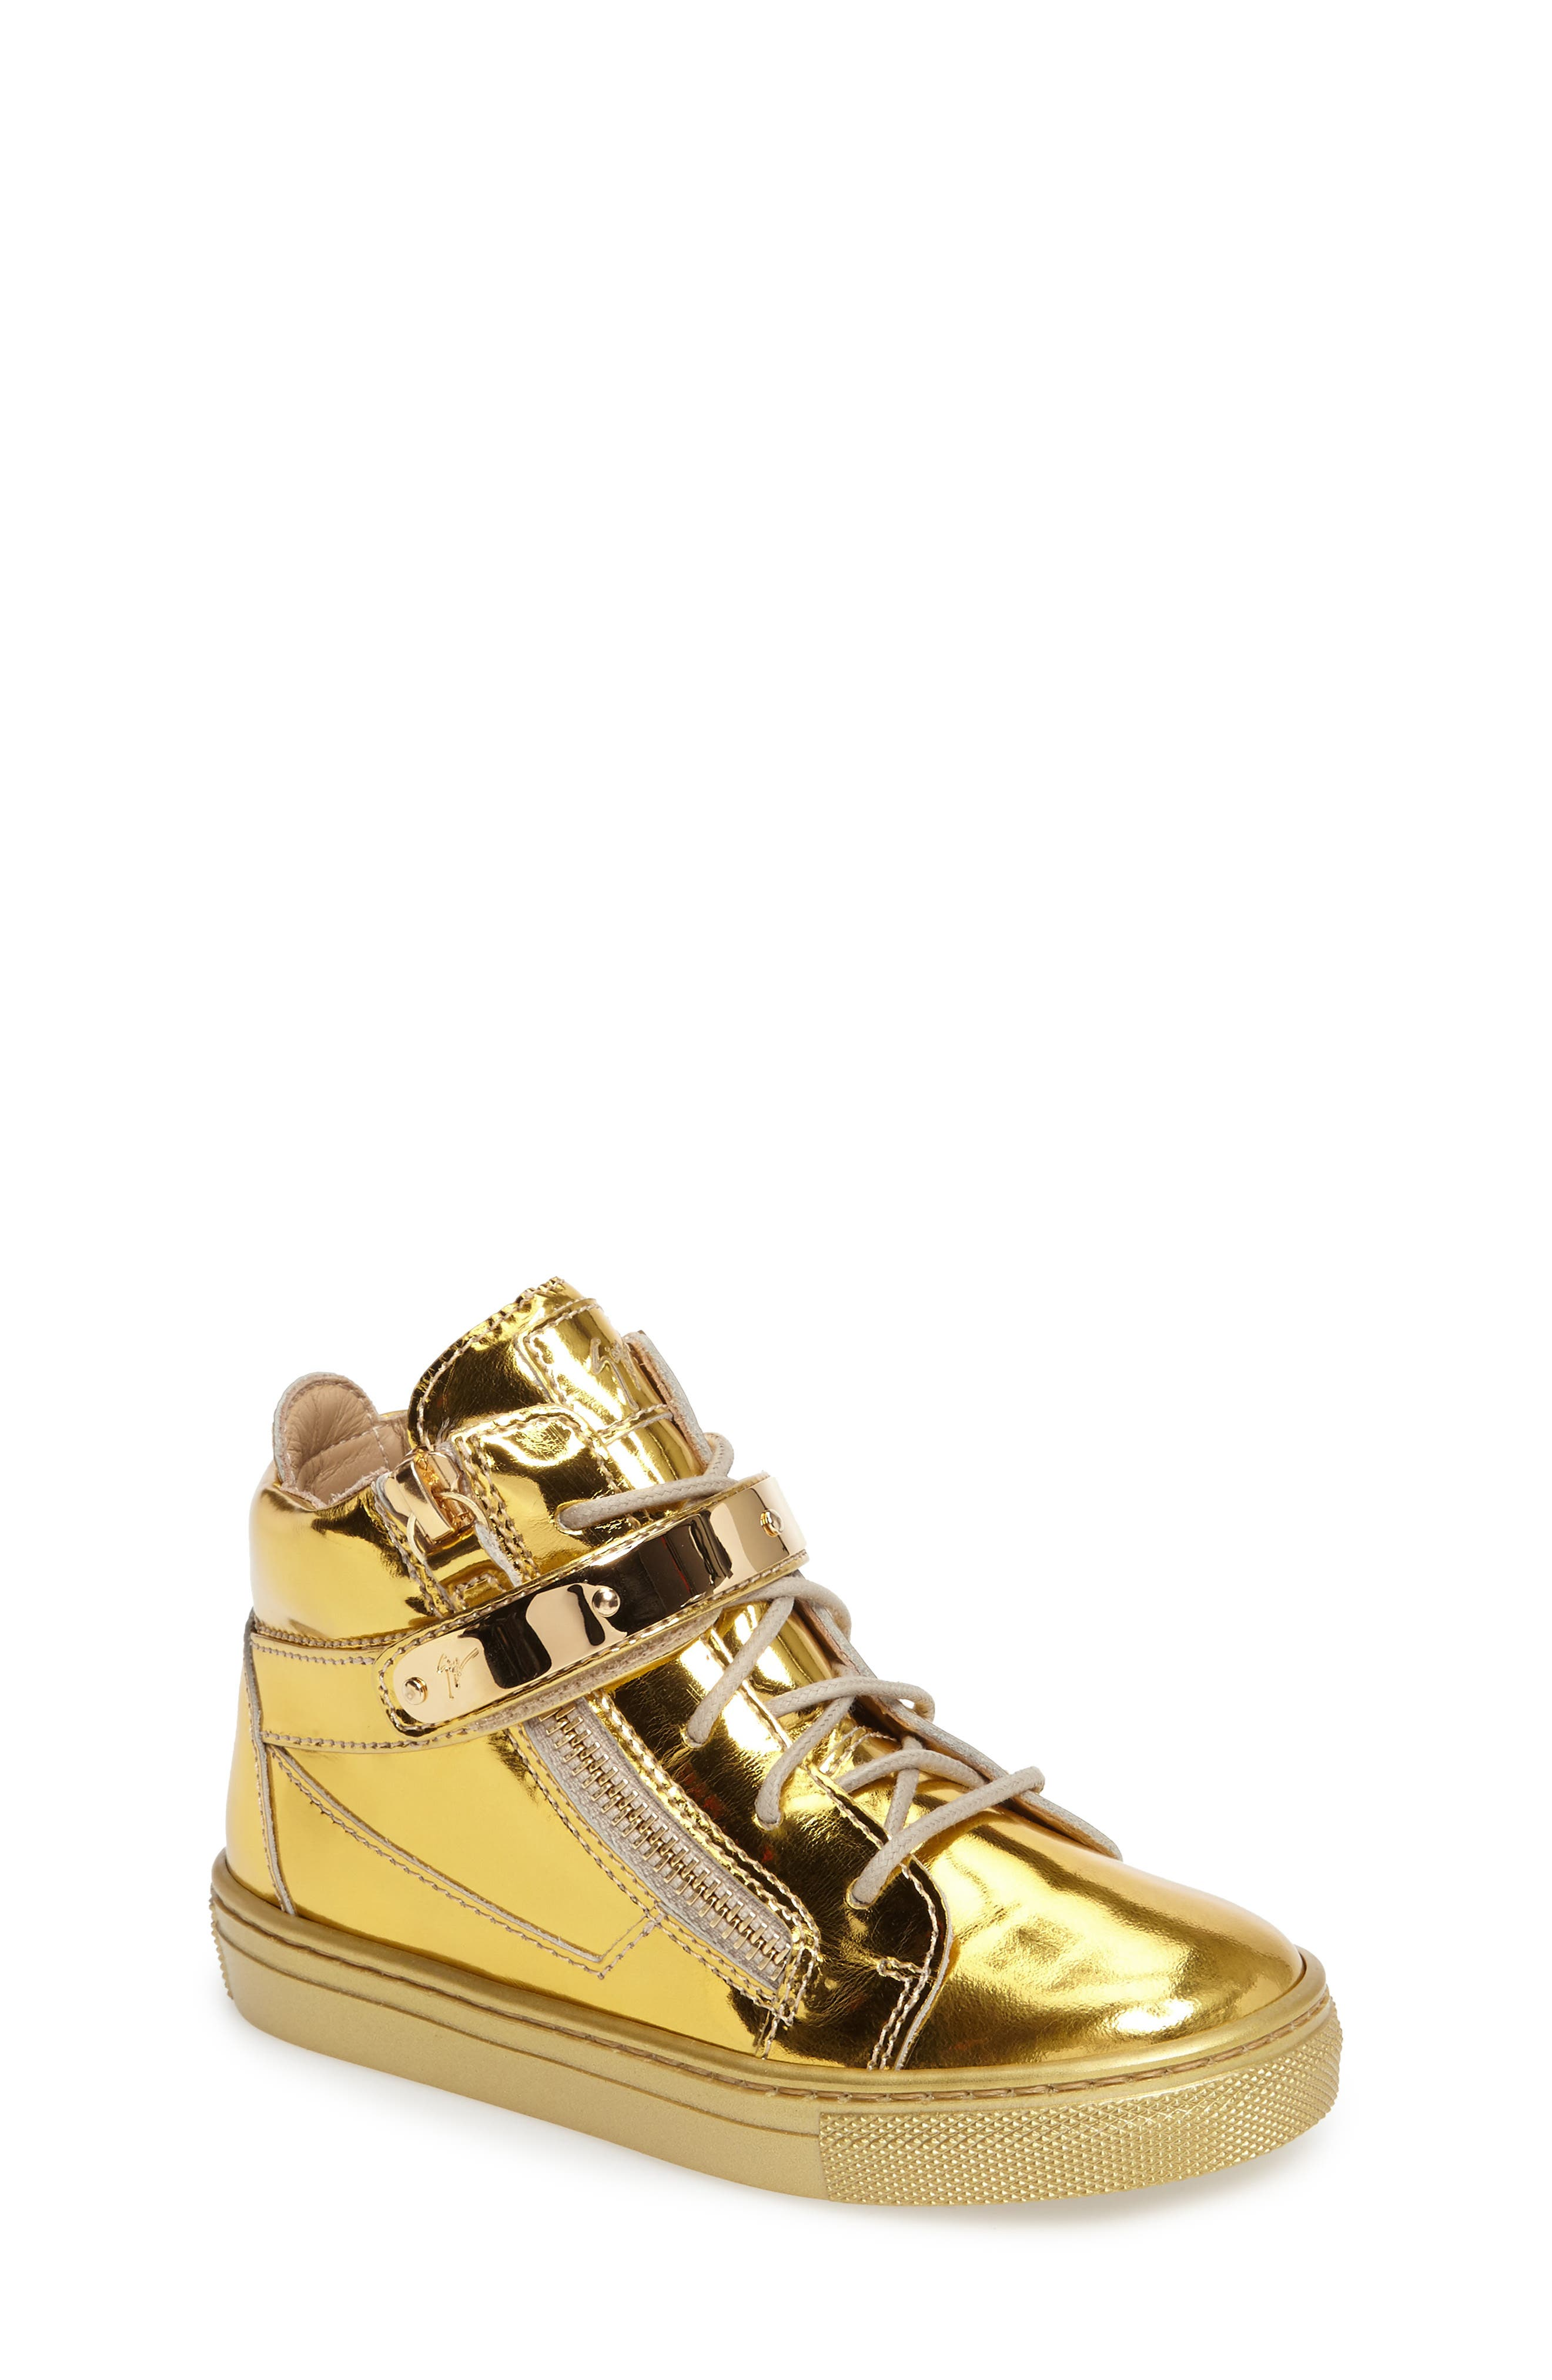 High Top Sneaker,                             Main thumbnail 1, color,                             Gold